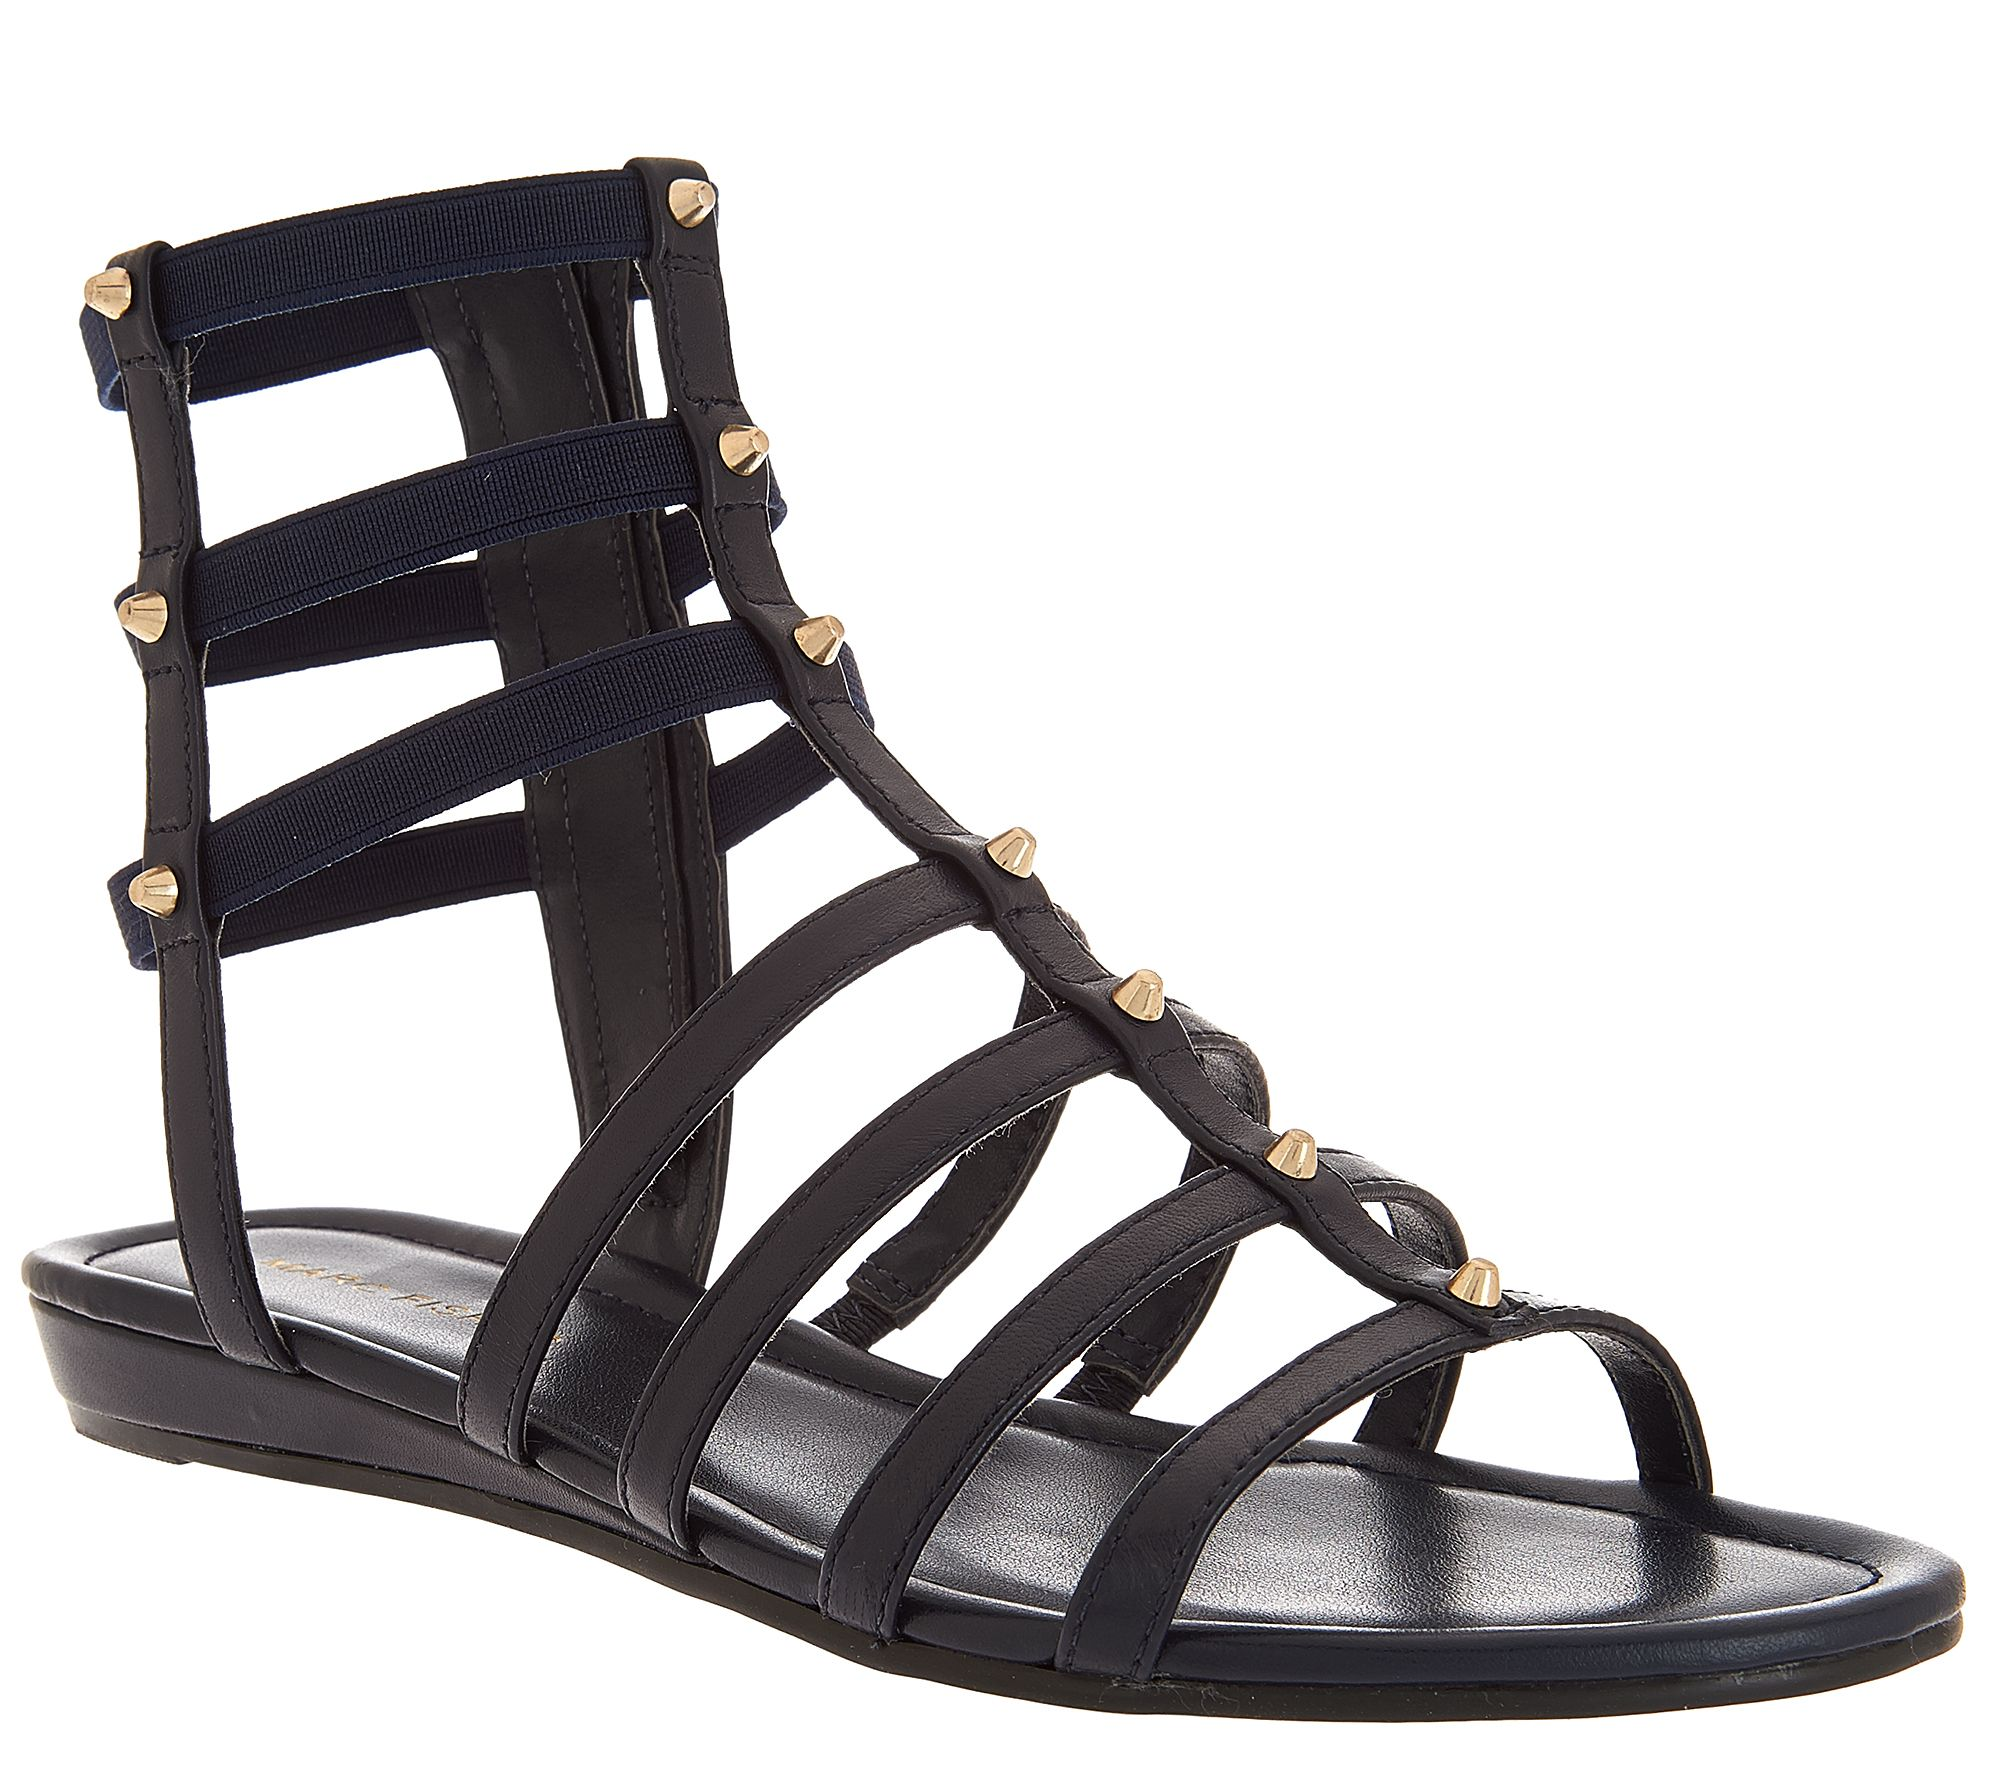 80e3e726f74 Marc Fisher Leather Gladiator Sandals w Studs - Pritty - Page 1 — QVC.com